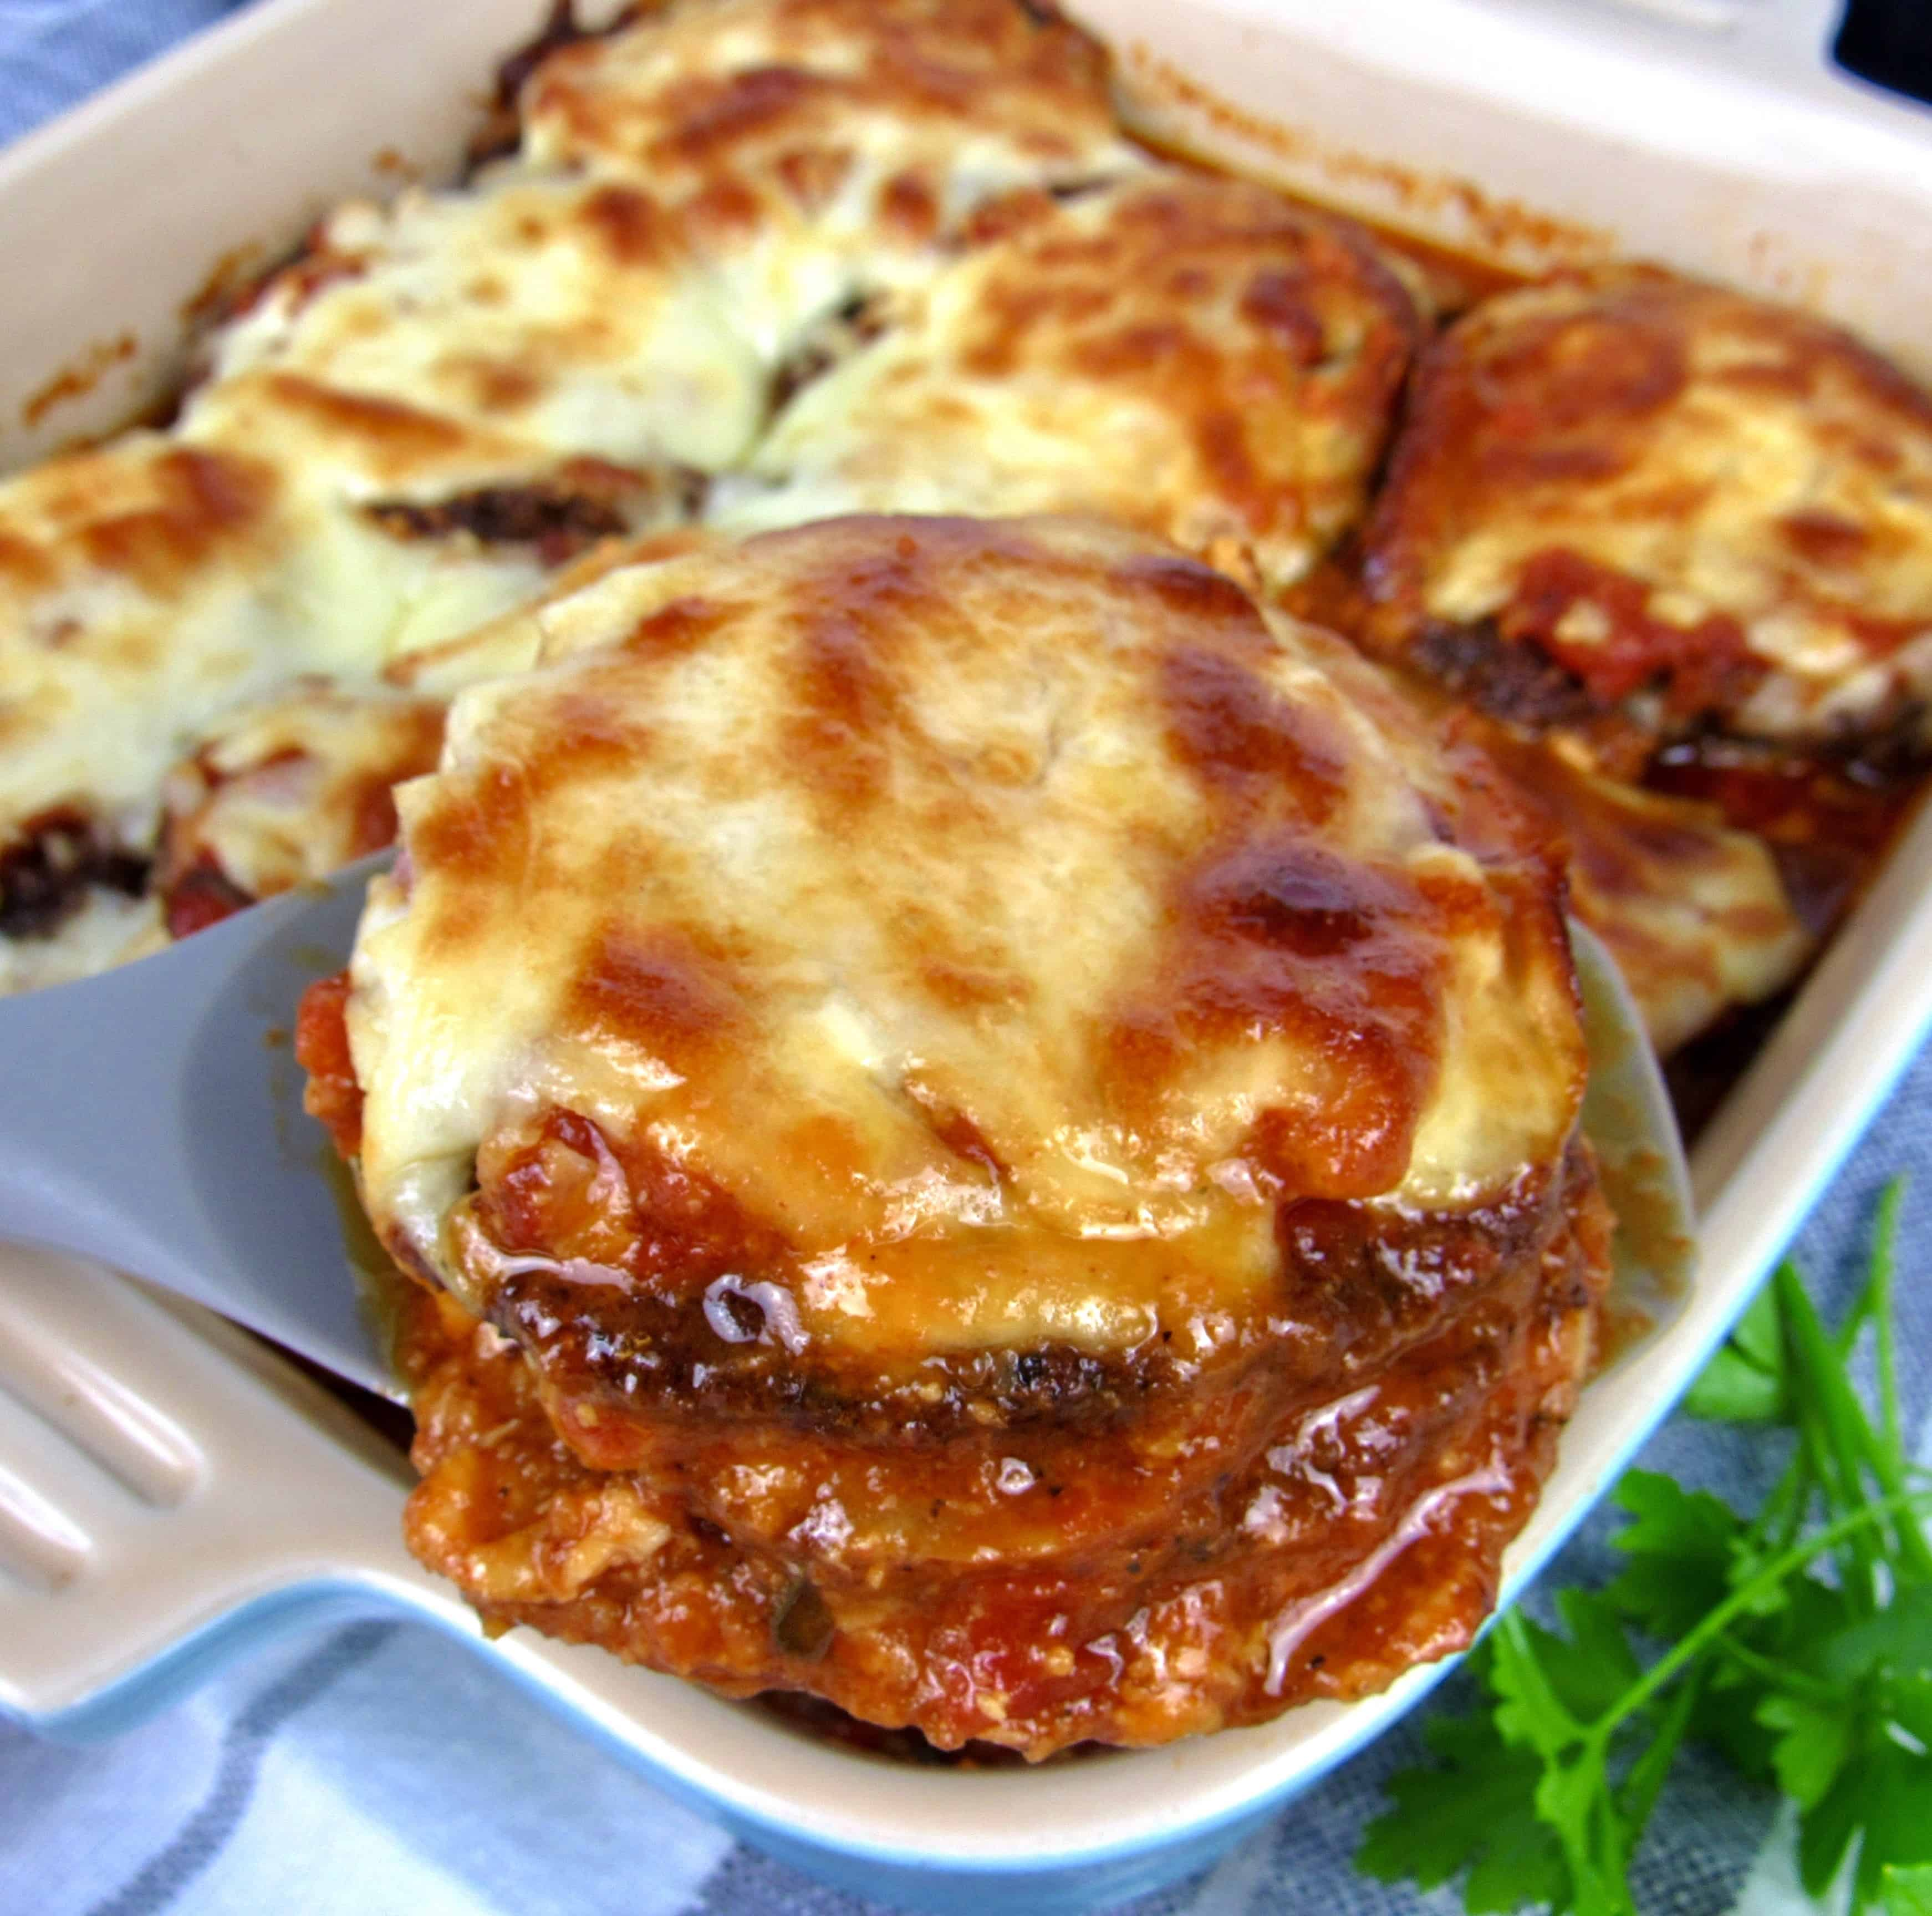 eggplant parmesan being spooned out of a casserole